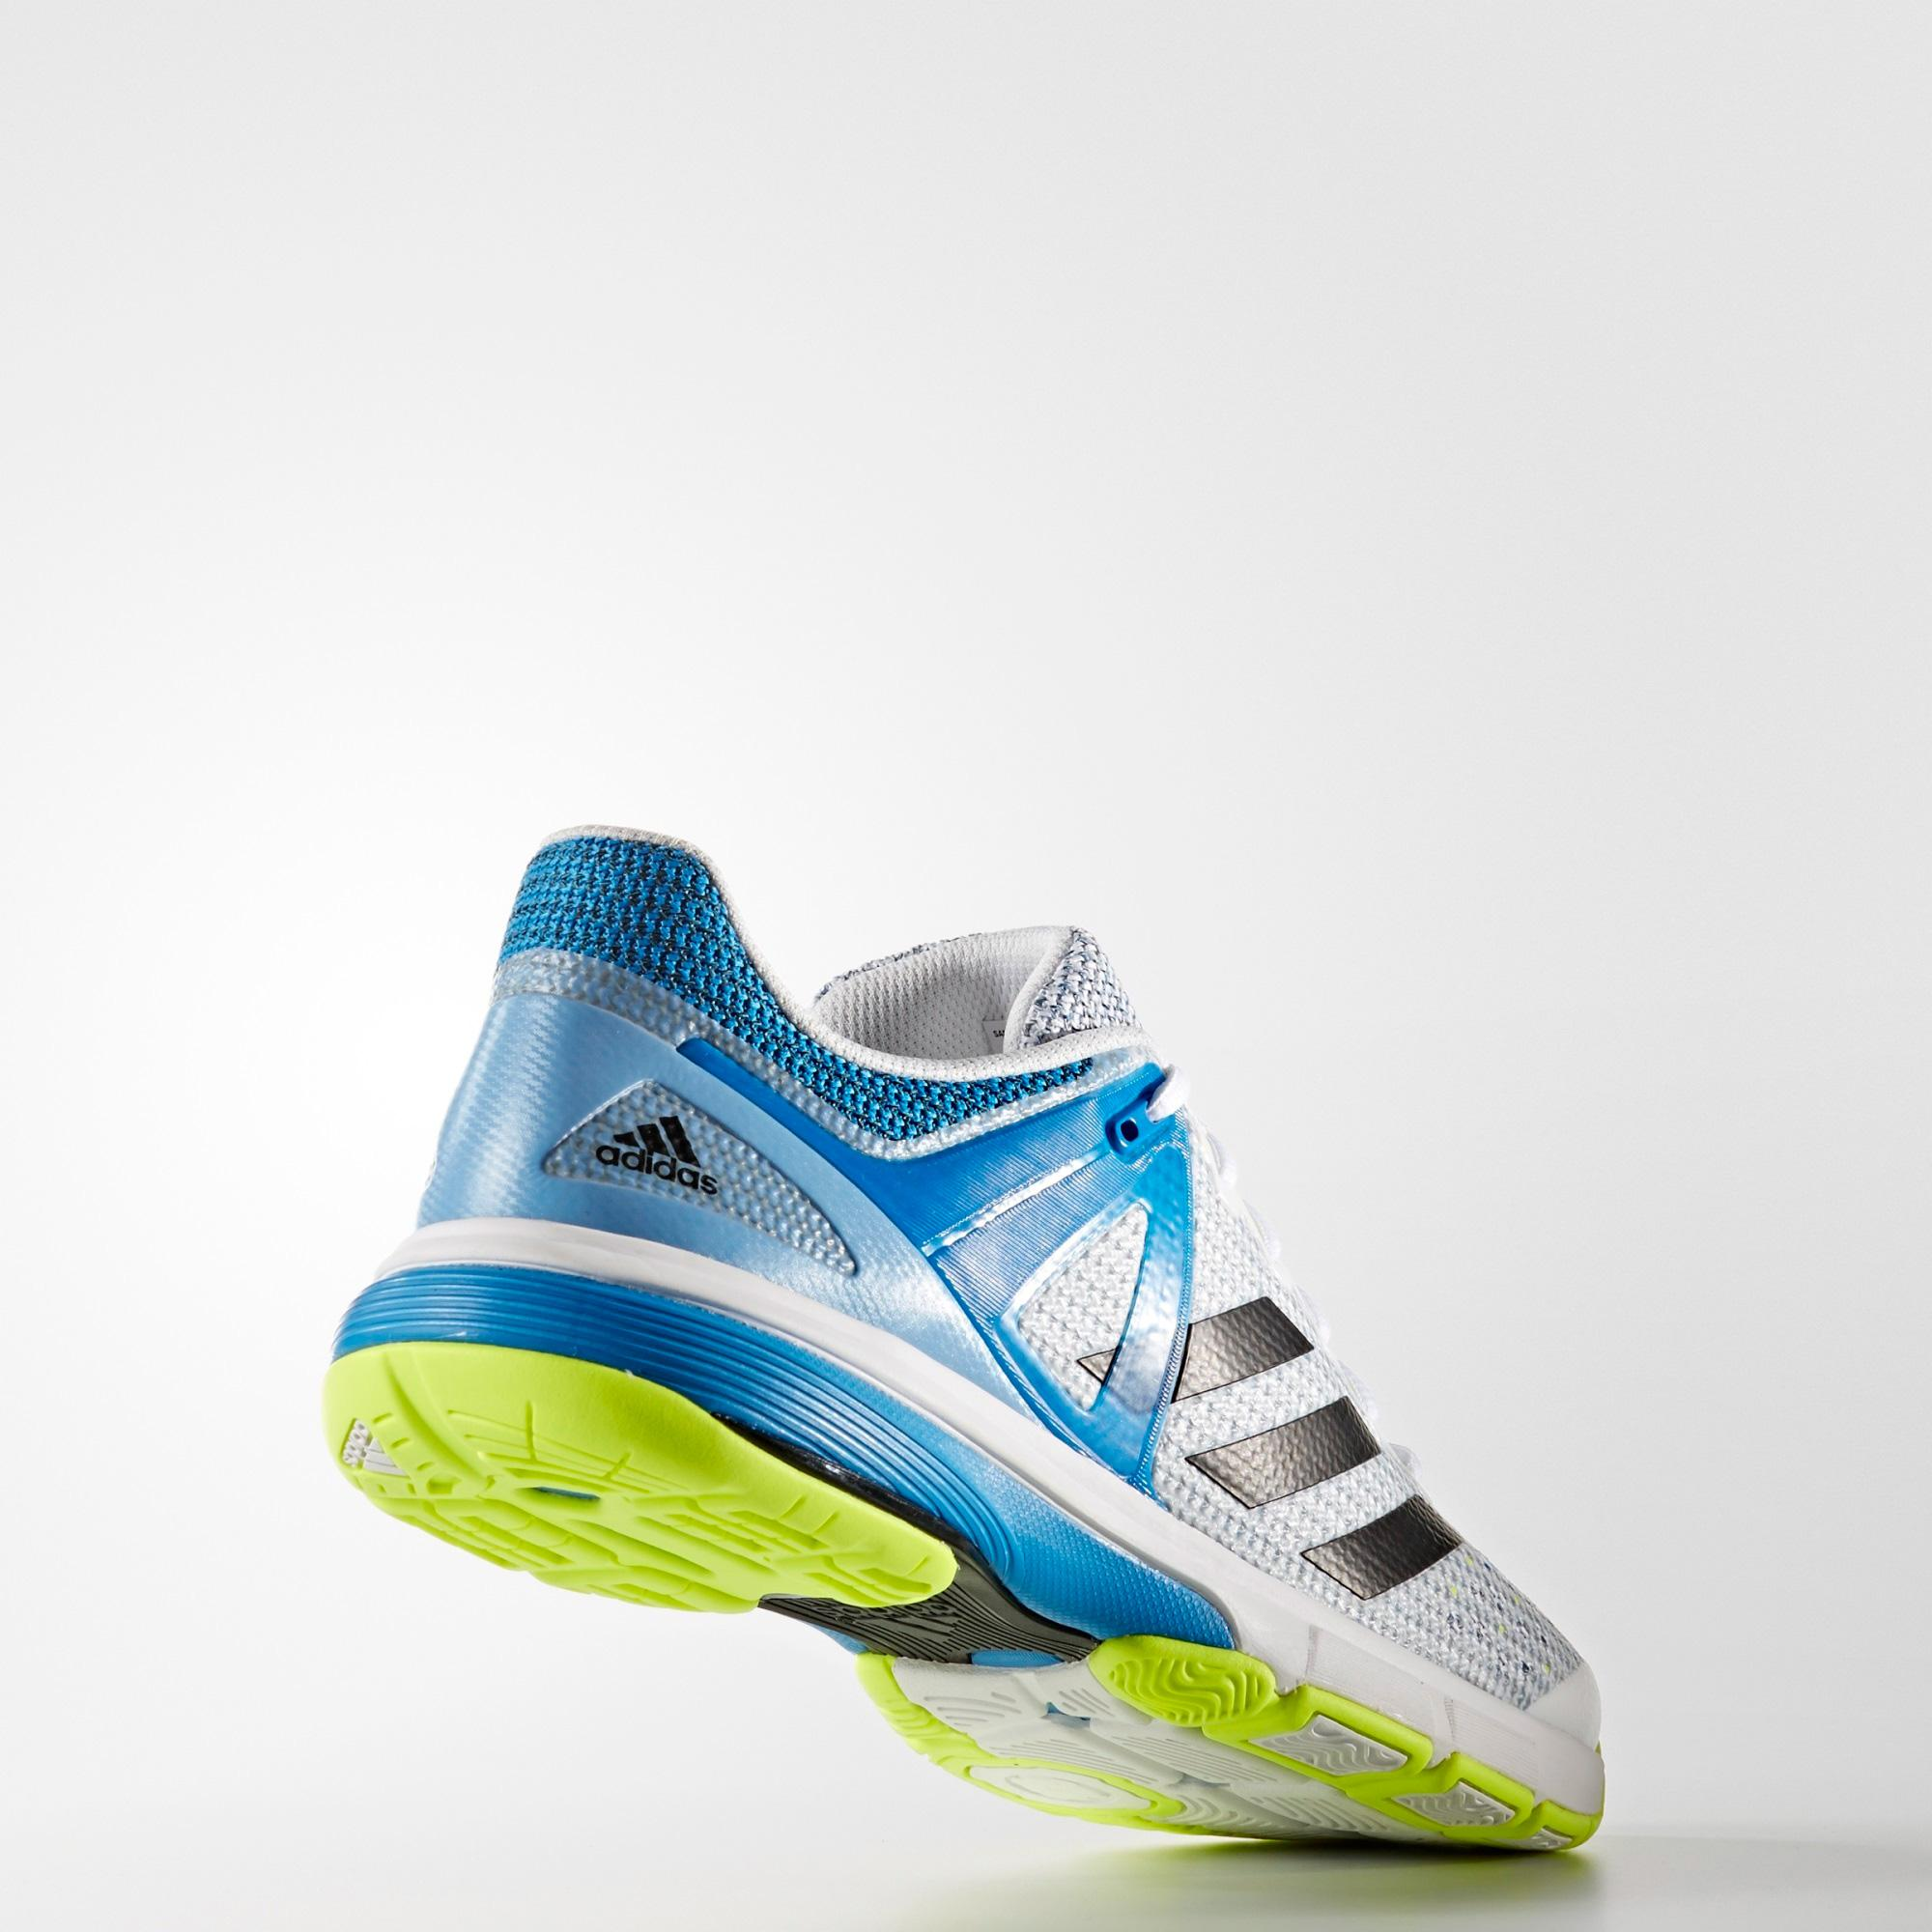 e37a5fc25 Adidas Mens Court Stabil 13 Indoor Shoes - White/Blue - Tennisnuts.com